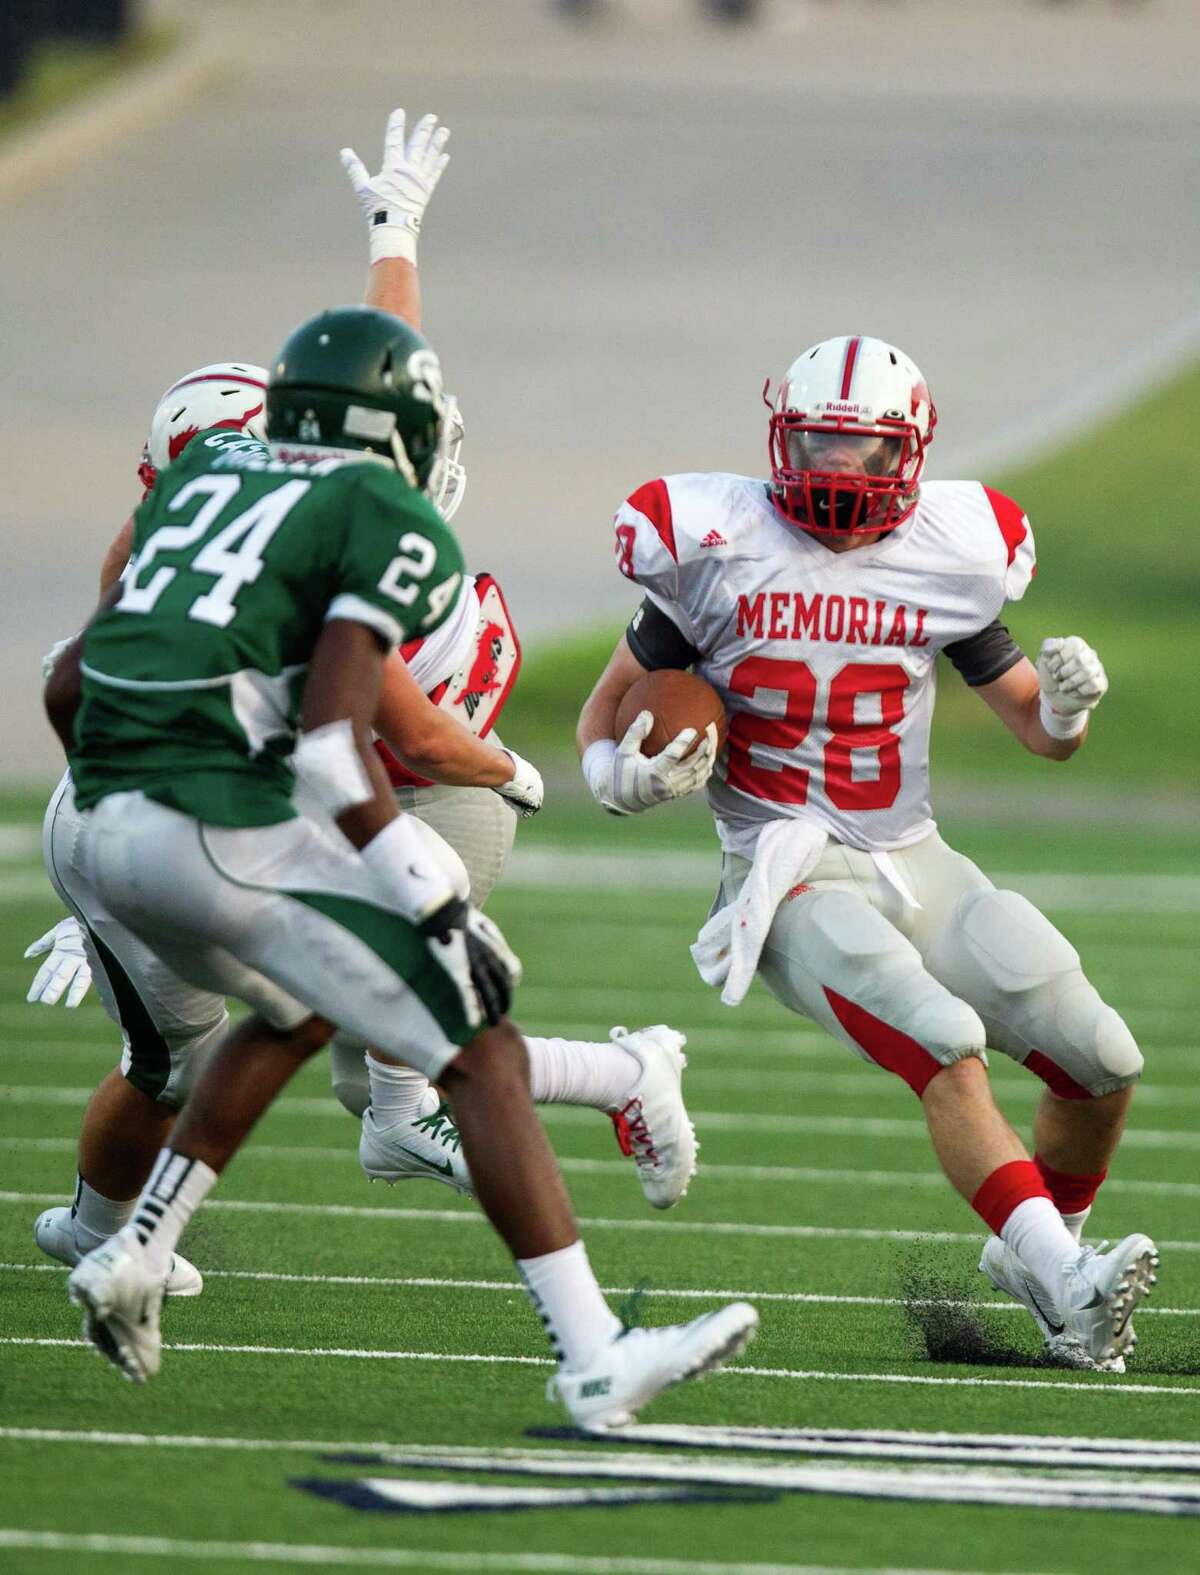 Memorial running back Matt Collins (28) runs past Stratford defensive back Zach Miller (24) during the first half of a high school football game at Tully stadium on Friday, Aug. 30, 2013, in Houston. ( J. Patric Schneider / For the Chronicle )